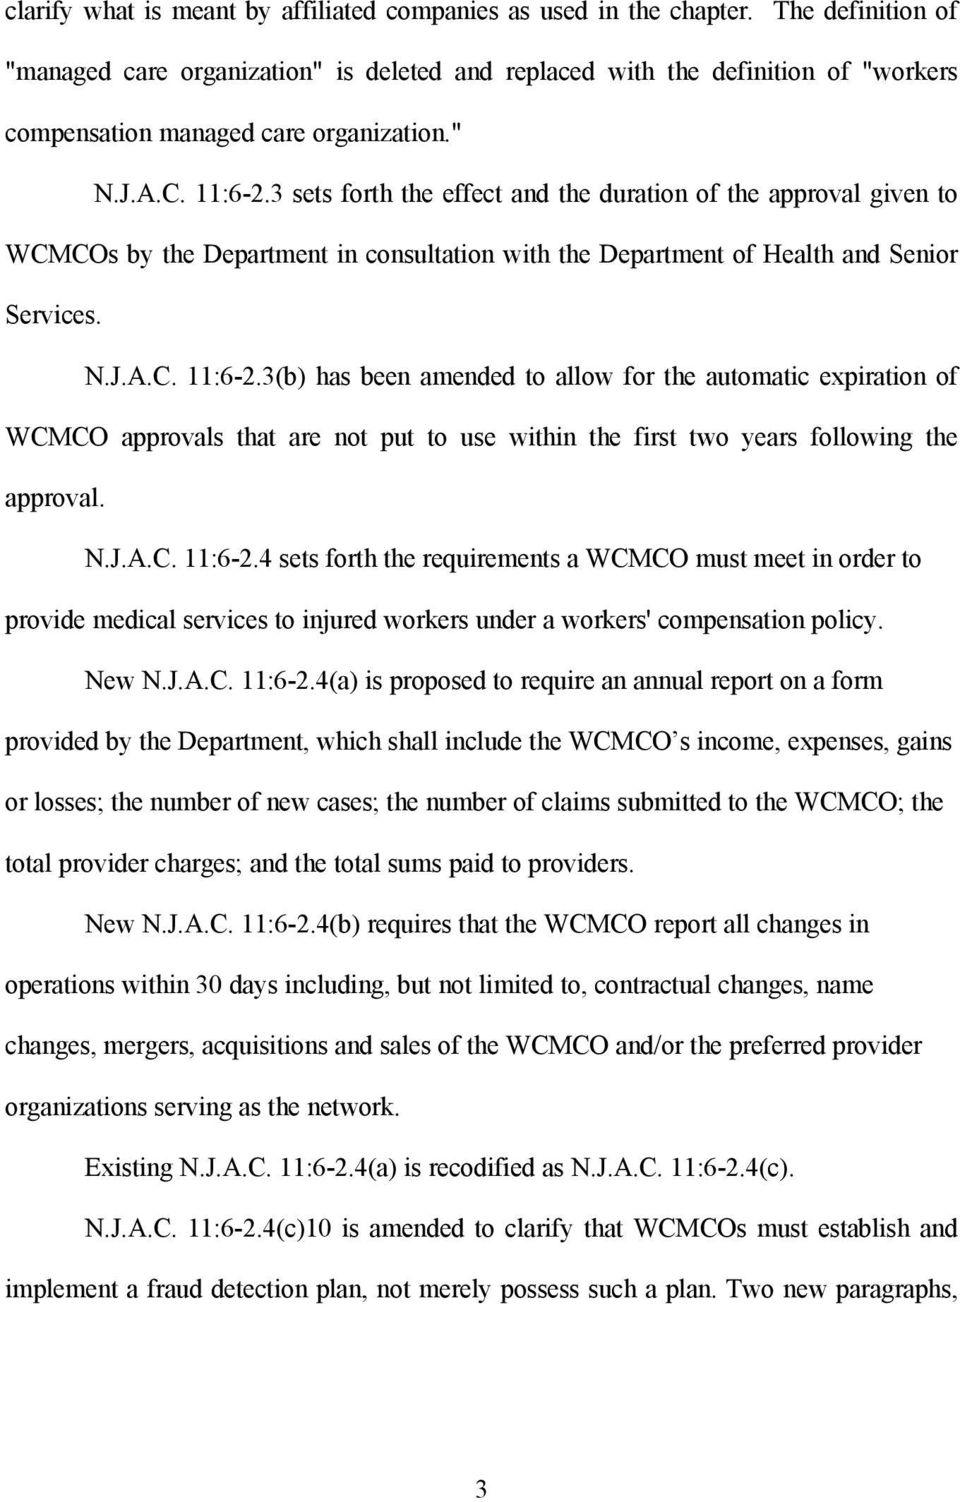 3 sets forth the effect and the duration of the approval given to WCMCOs by the Department in consultation with the Department of Health and Senior Services. N.J.A.C. 11:6-2.